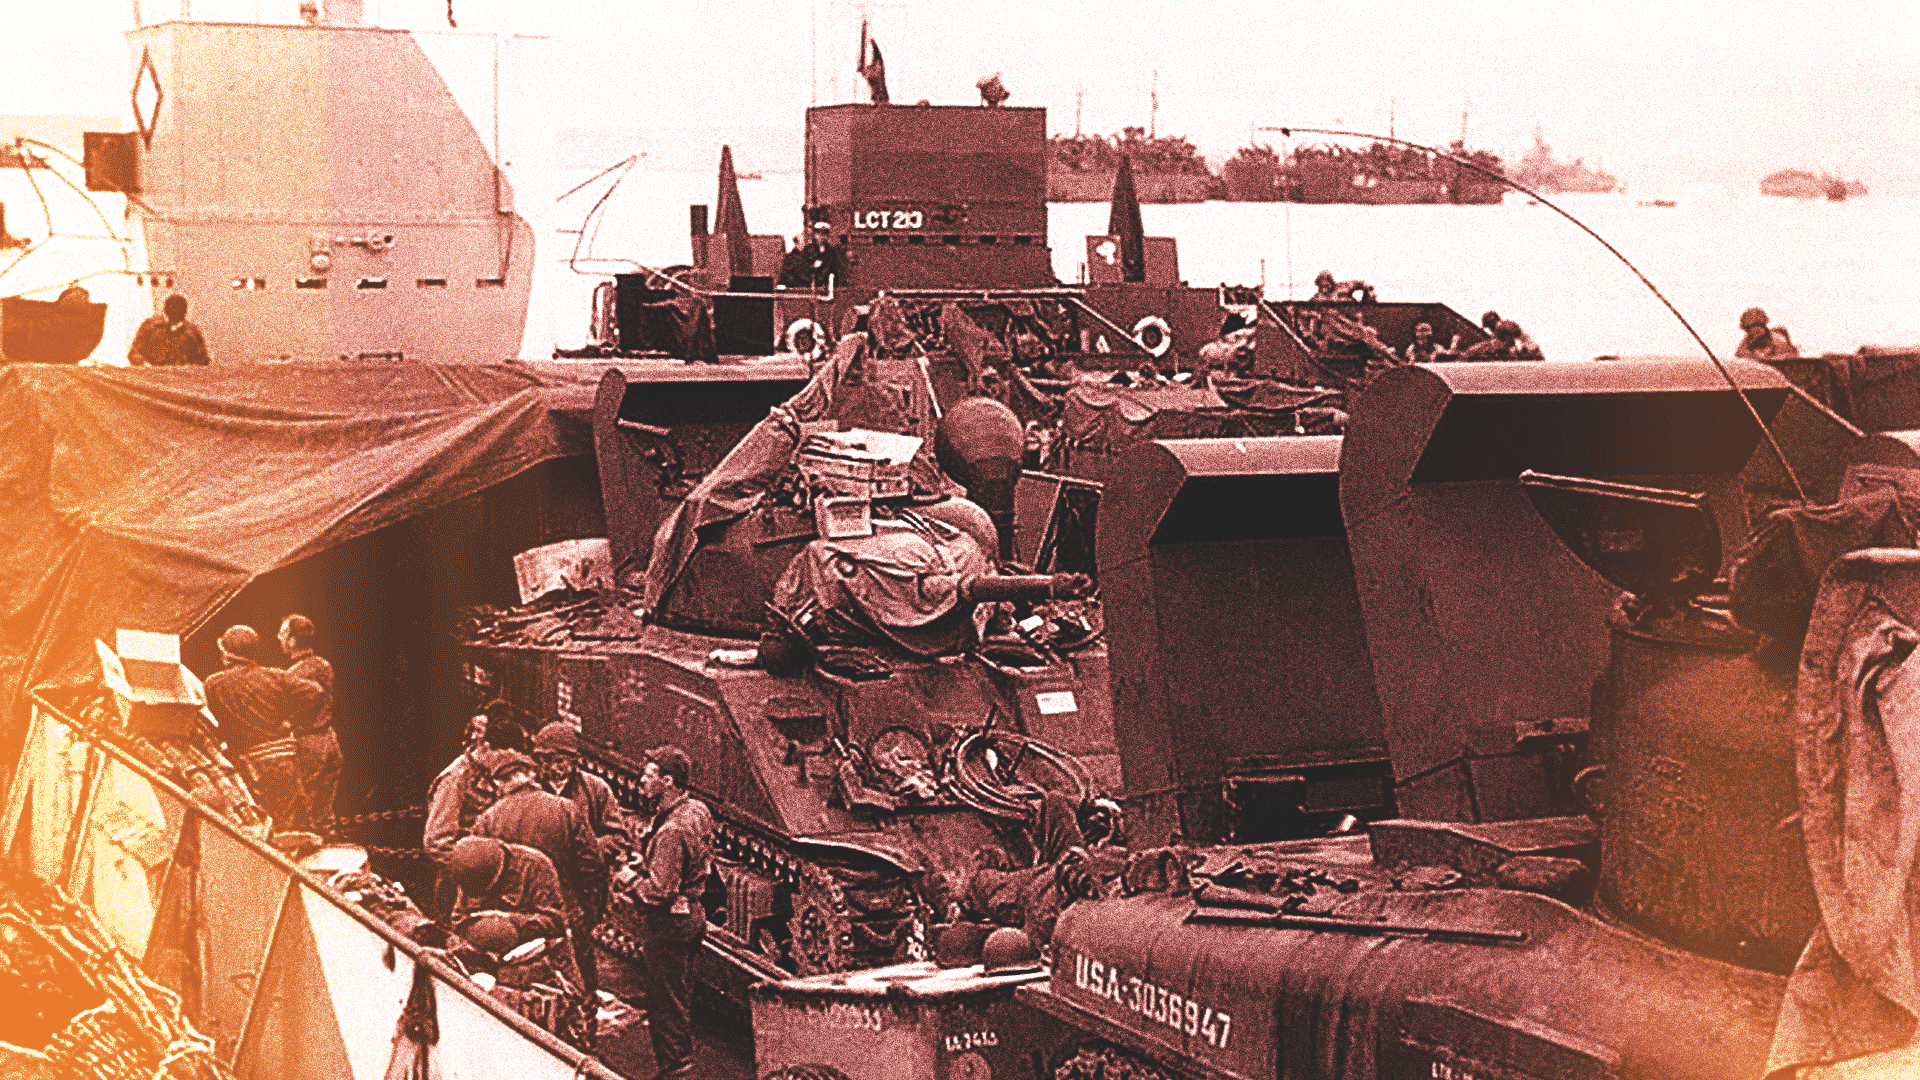 US Army M4 Sherman tanks loaded in a landing craft tank (LCT), ready for the invasion of France, c. late May or early June 1944